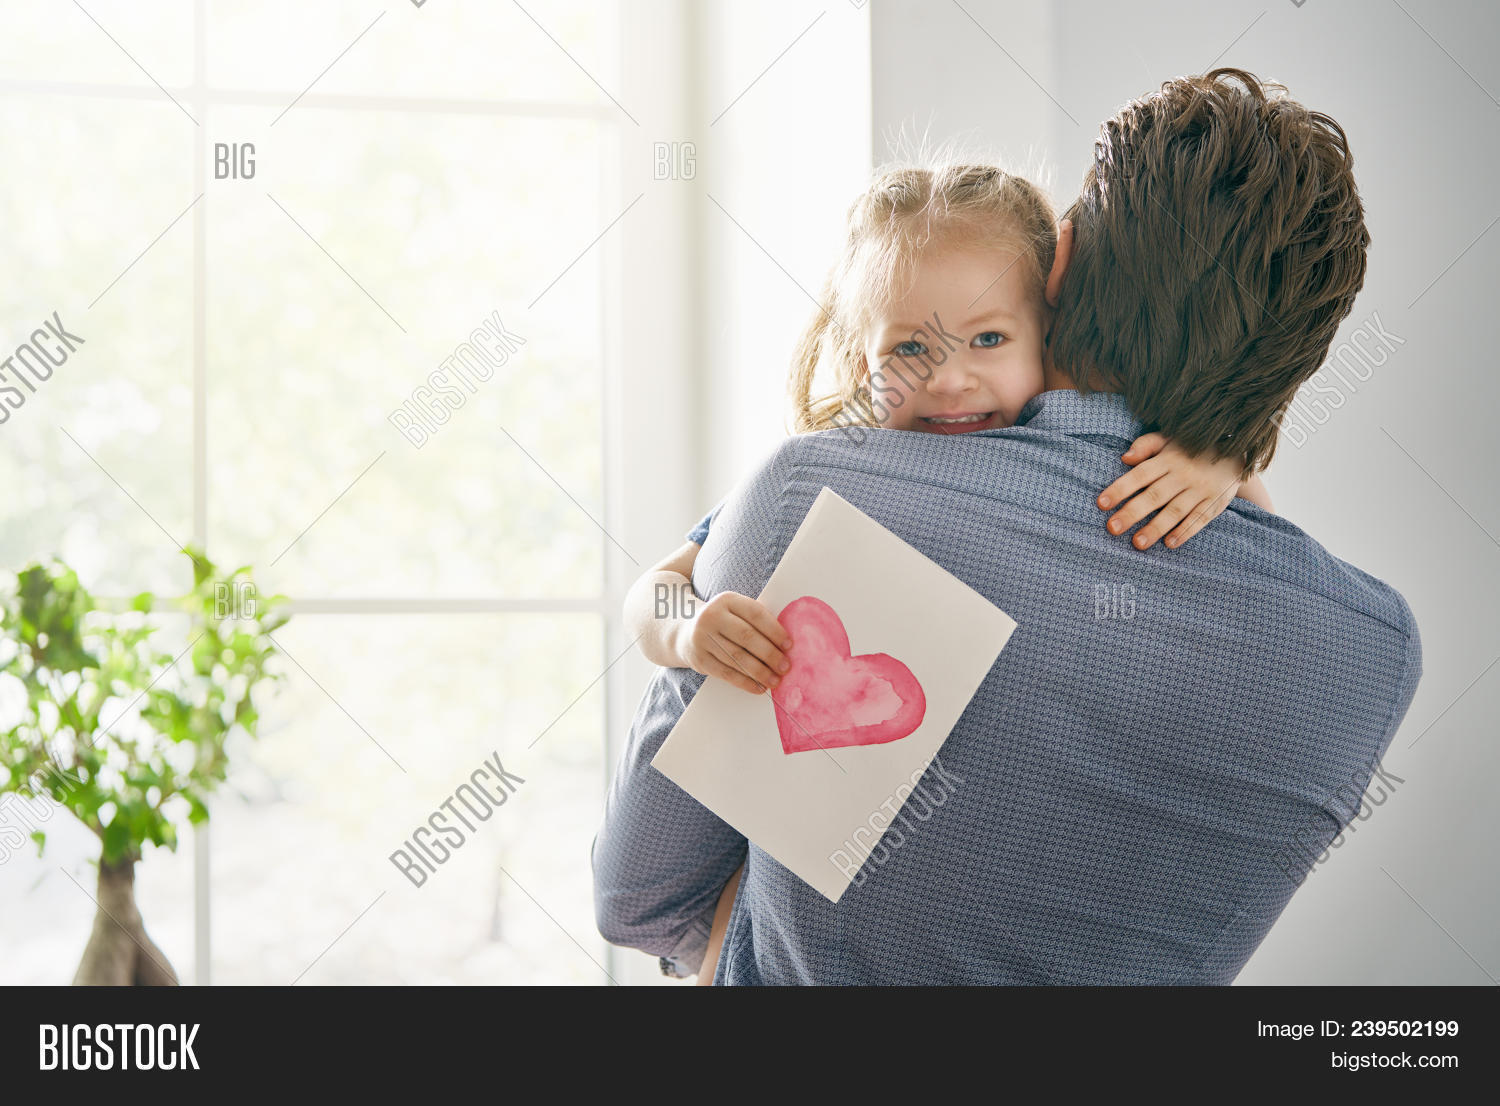 baby,beautiful,beauty,bed,bedroom,birthday,card,casual,caucasian,celebration,cheerful,child,childhood,concept,cute,dad,daddy,daughter,day,emotion,face,family,father,fatherhood,female,fun,gift,girl,giving,happiness,happy,heart,holiday,home,indoor,kid,laugh,lifestyle,little,love,man,parent,portrait,post,postcard,present,smiling,spring,surprise,young